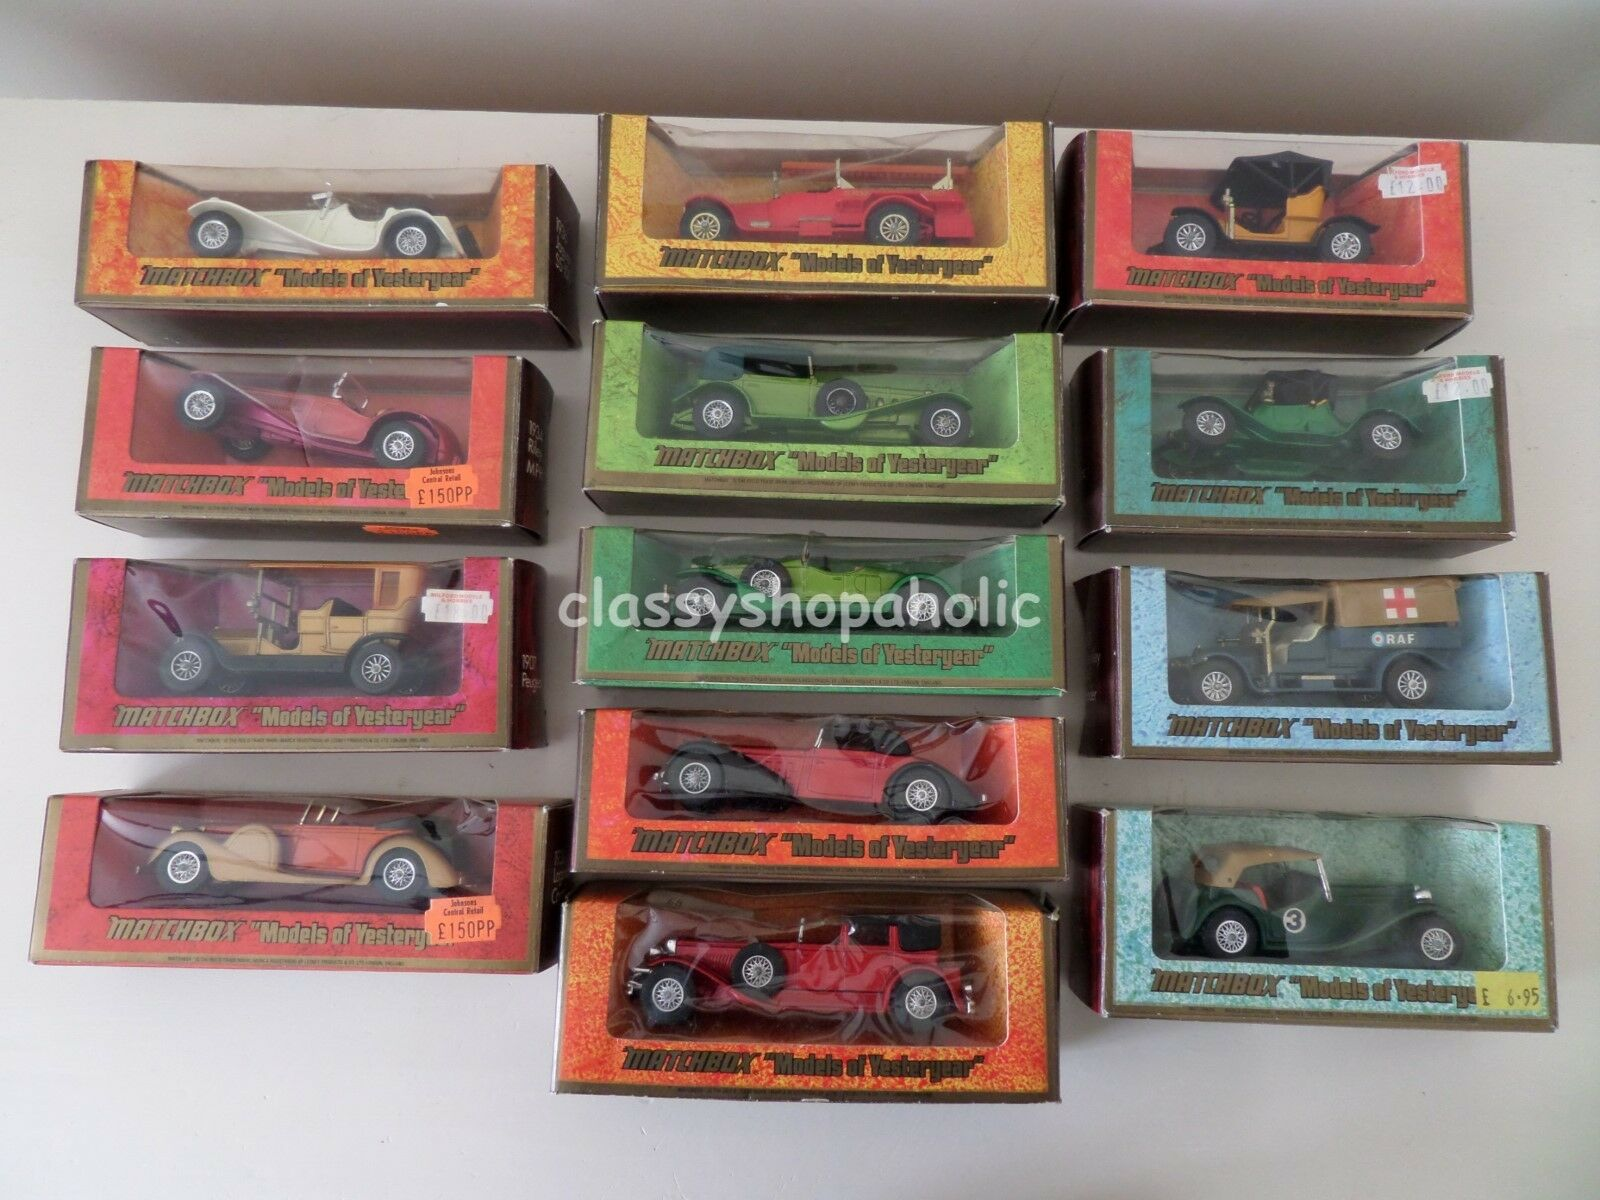 Matchbox Models of Yesteryear - Y-1 Y-3 Y-4 Y-5 Y-6 Y8 Y-11 Y-13 Y-14 Y-16 Y-1Y